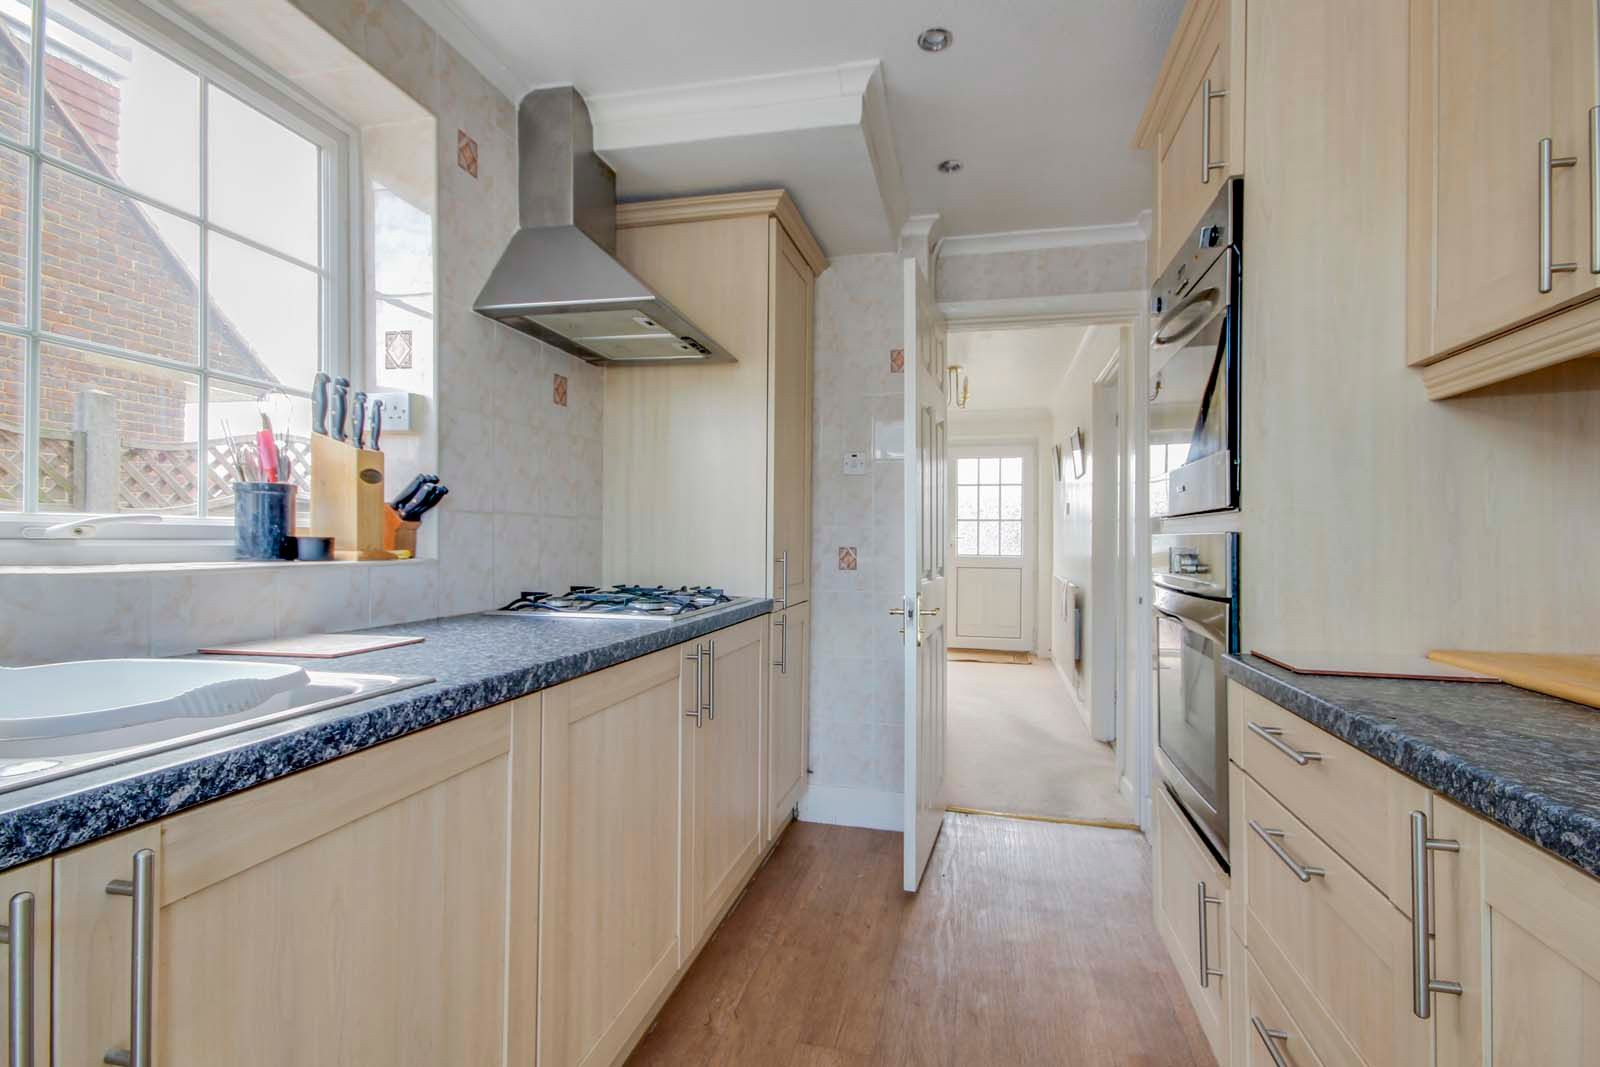 3 bed house for sale in Old Worthing Road  - Property Image 5